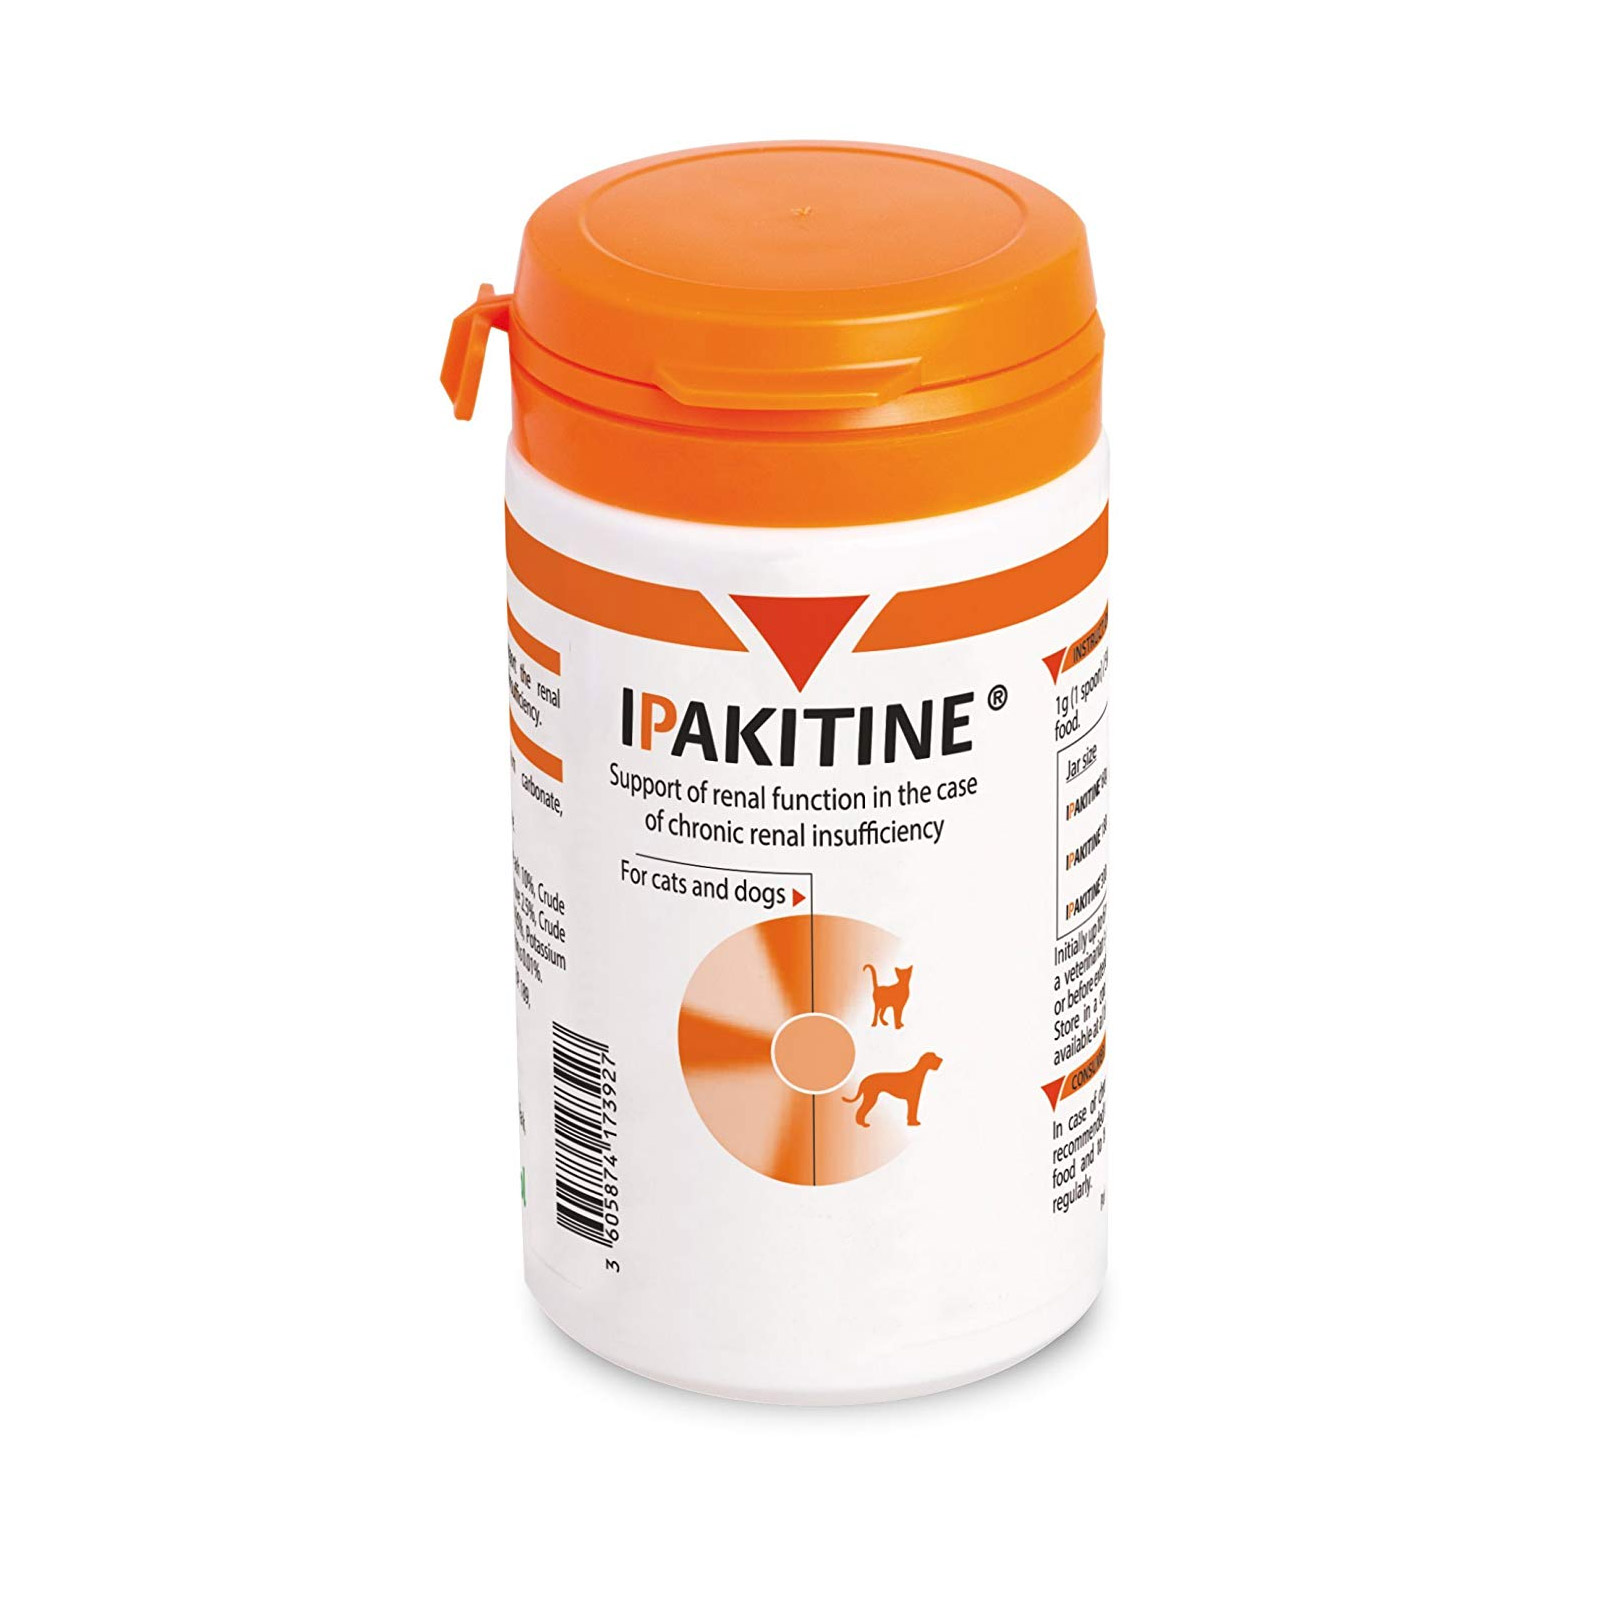 Ipakitine Calcium Supplement for Cats and Dogs